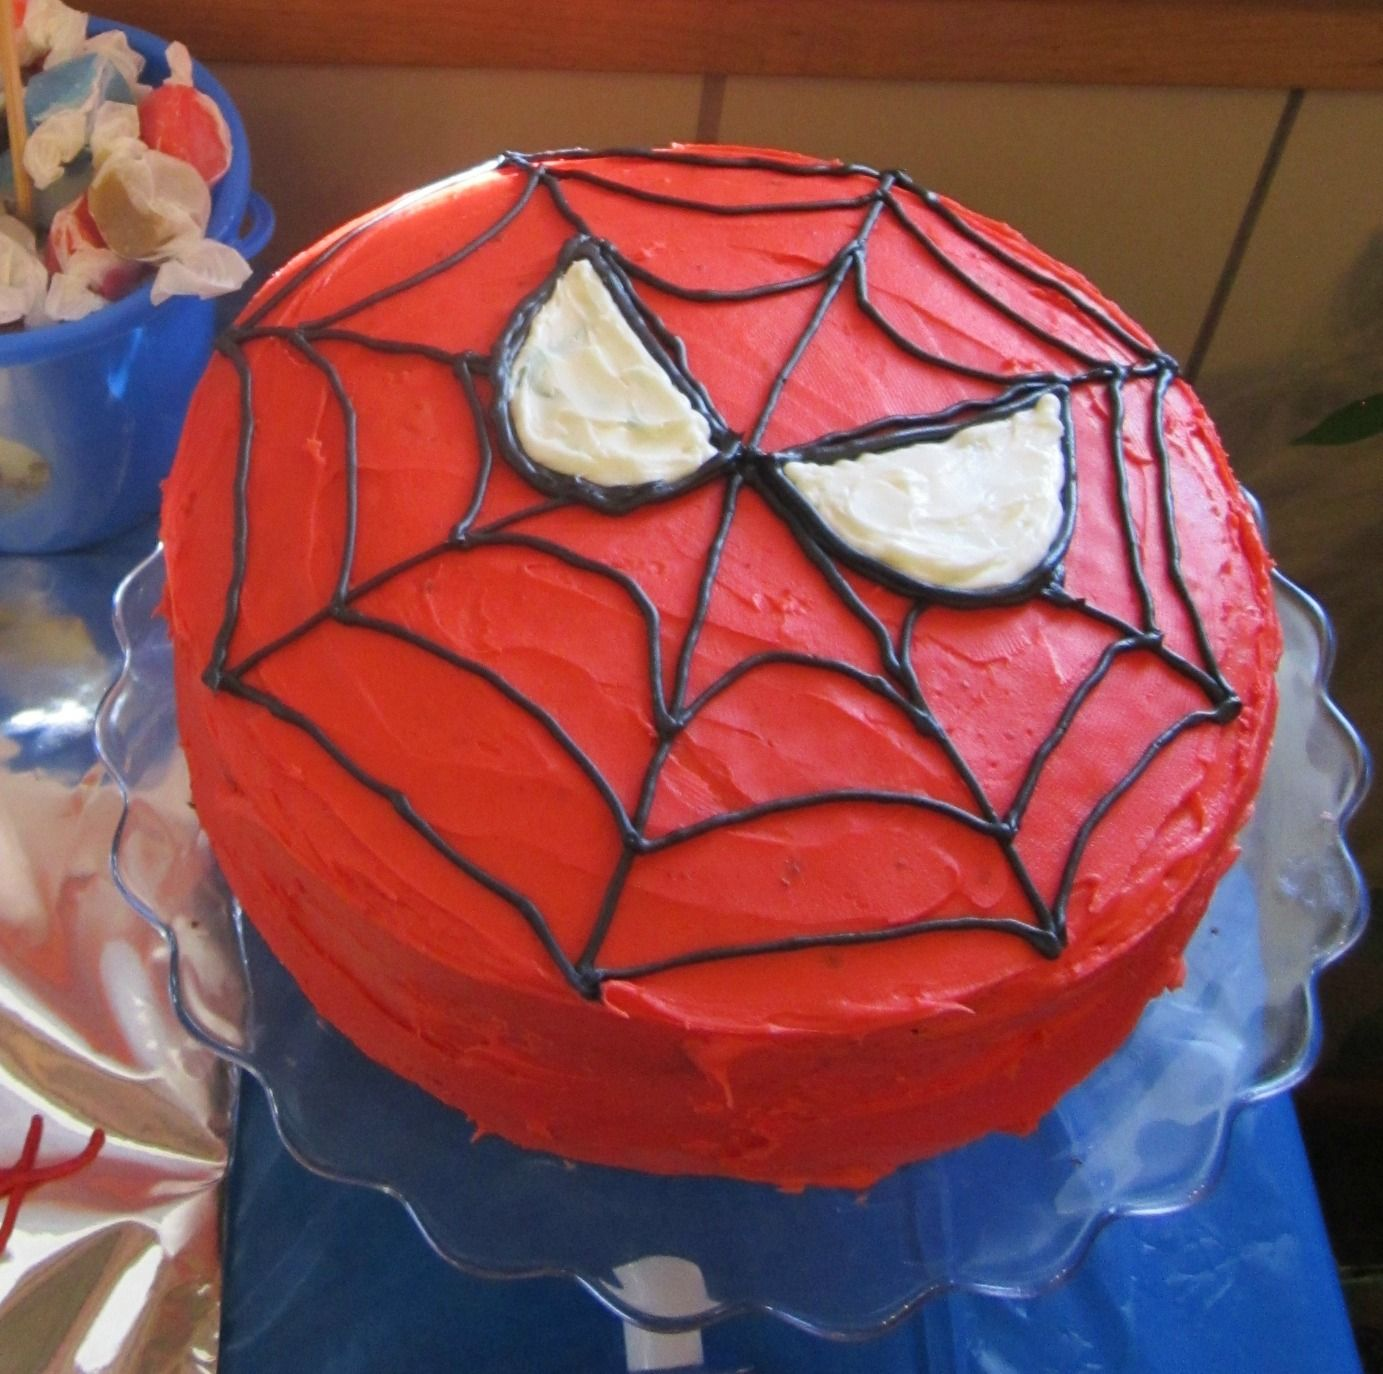 Decoration Anniversaire Theme Spiderman Spiderman Birthday Party Part 3 Cake And Cookies